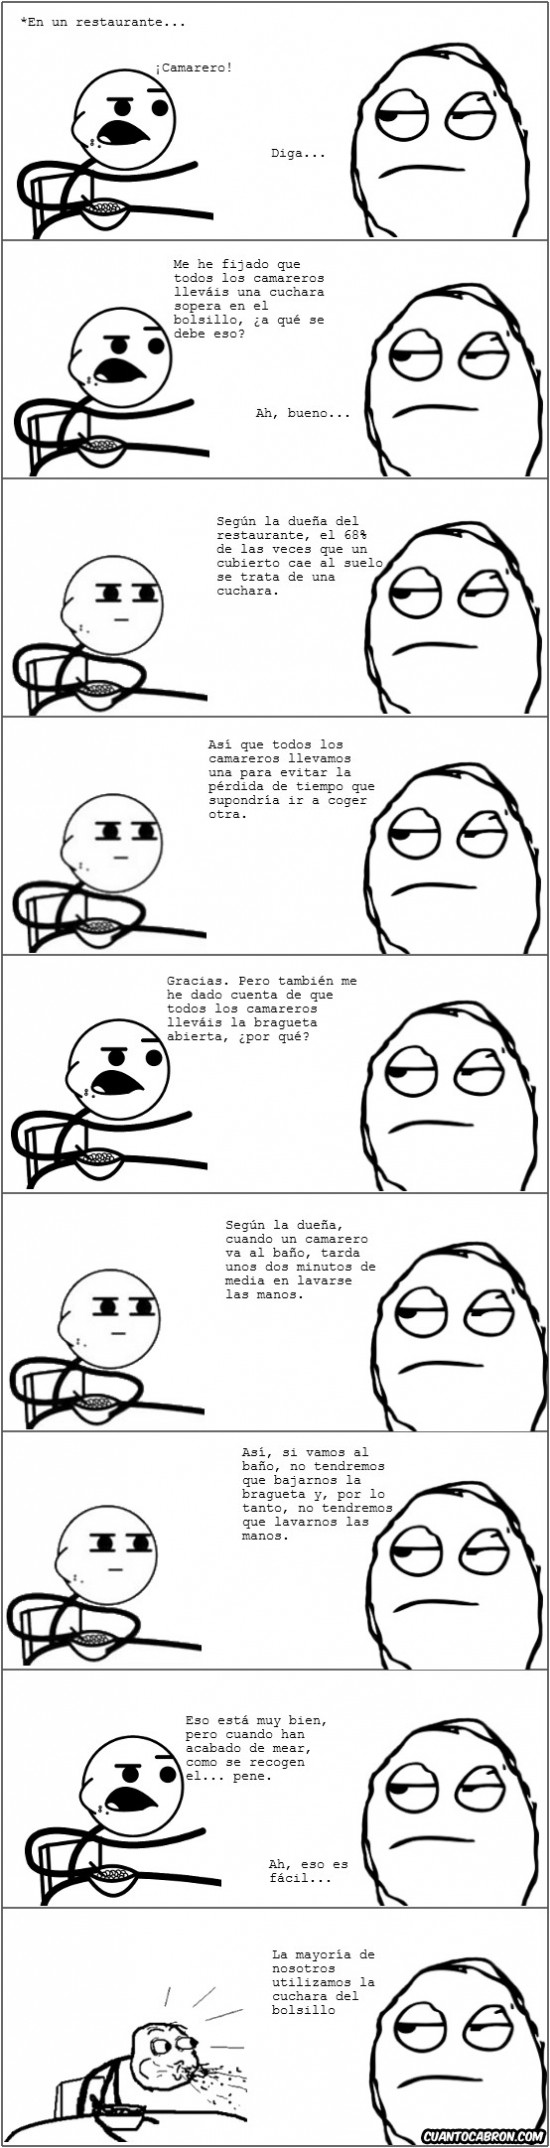 Cereal_guy - La cuchara y la bragueta